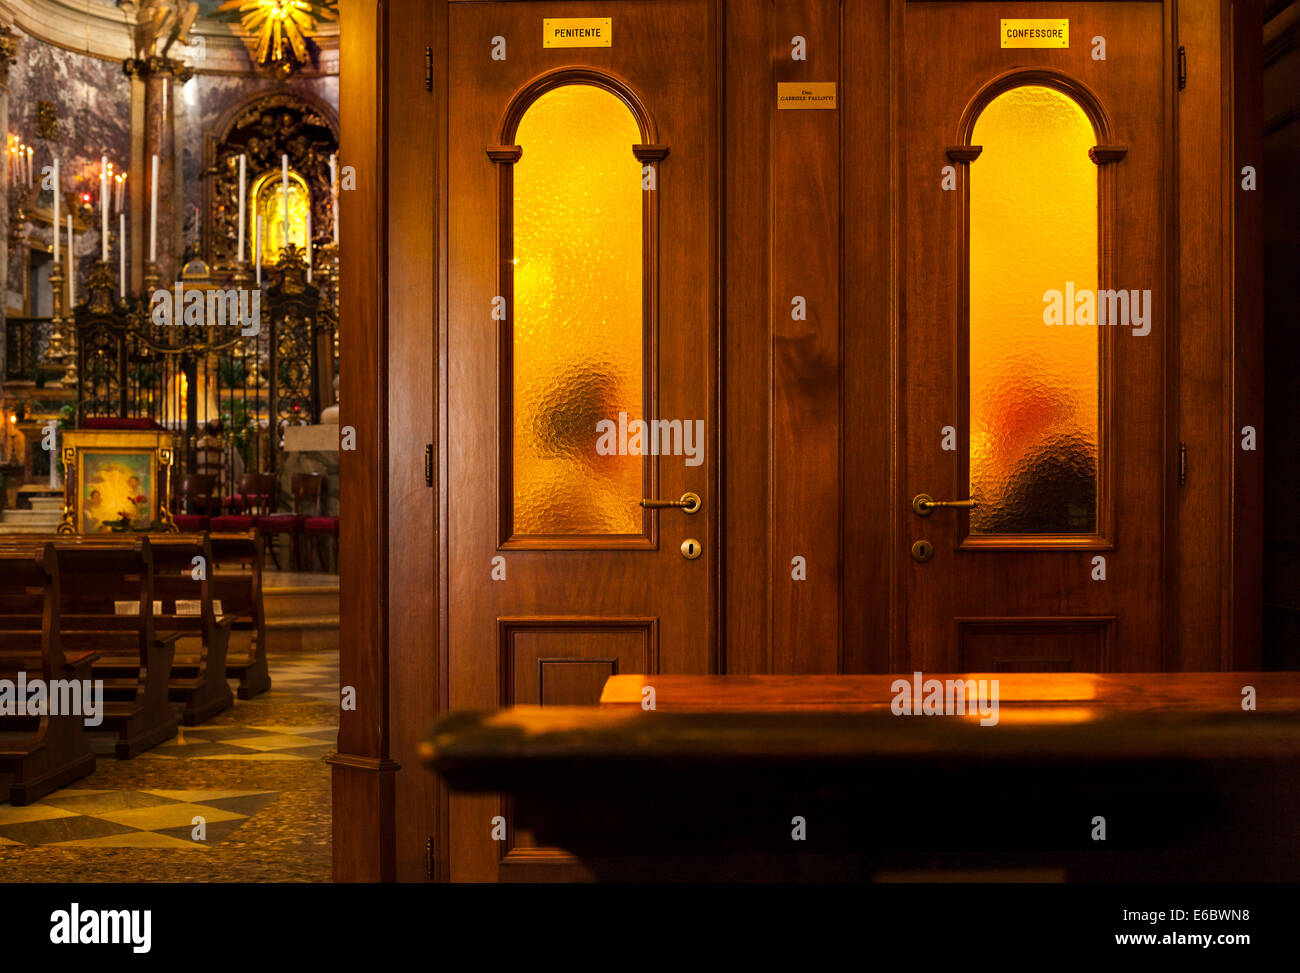 https://c7.alamy.com/comp/E6BWN8/priest-hearing-confession-in-confessional-box-booth-in-roman-catholic-E6BWN8.jpg